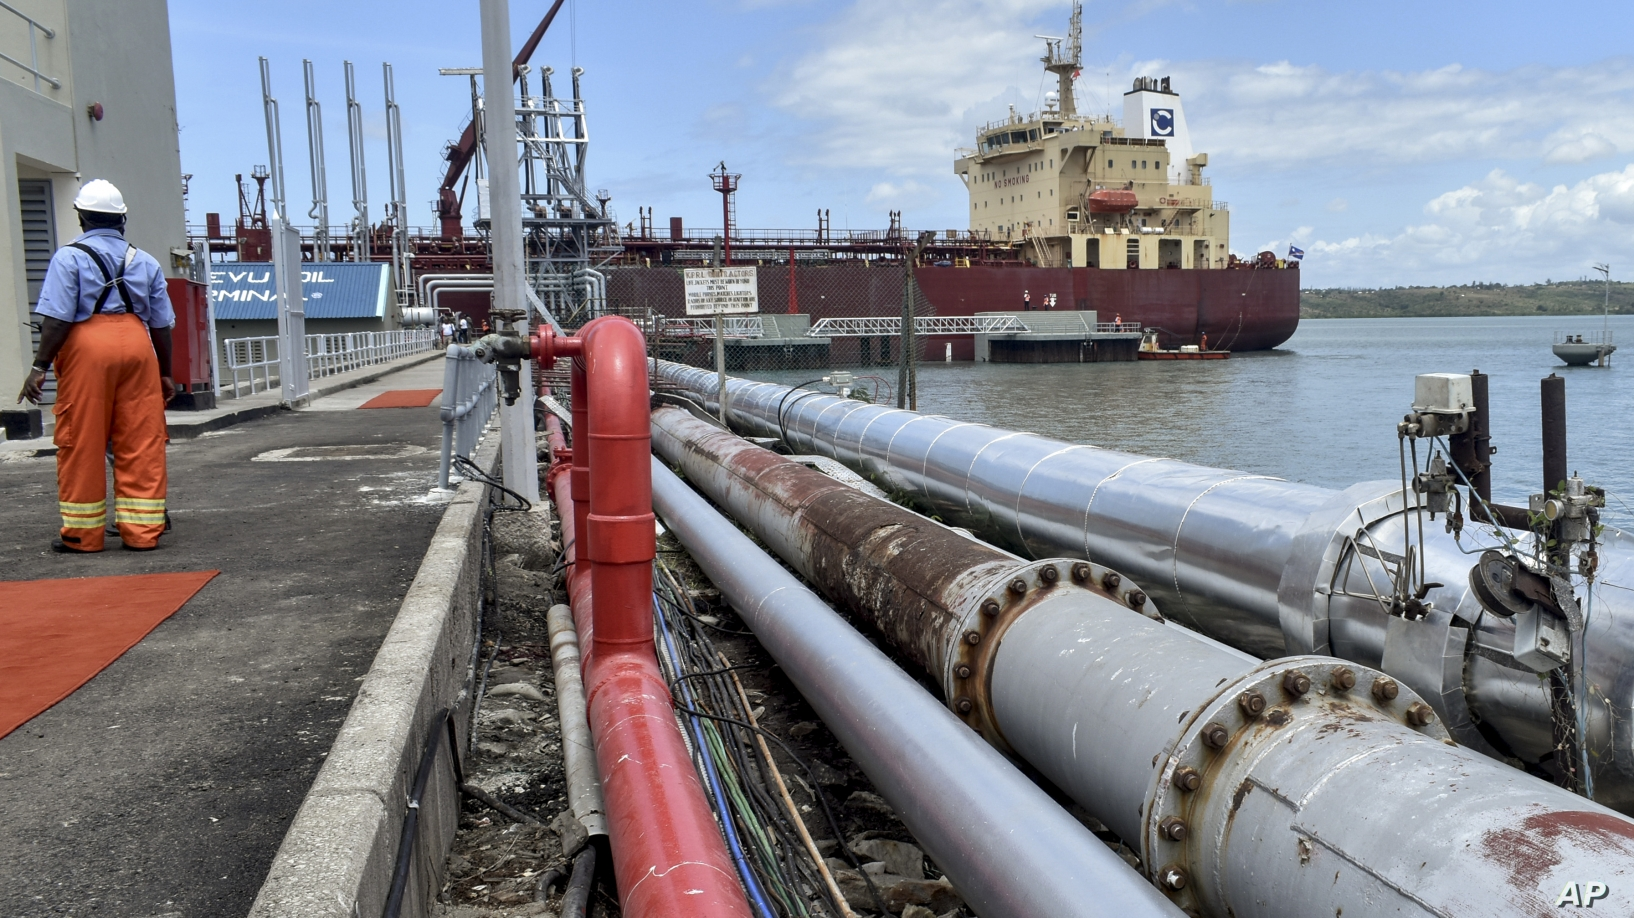 Activists want details on oil contract with China